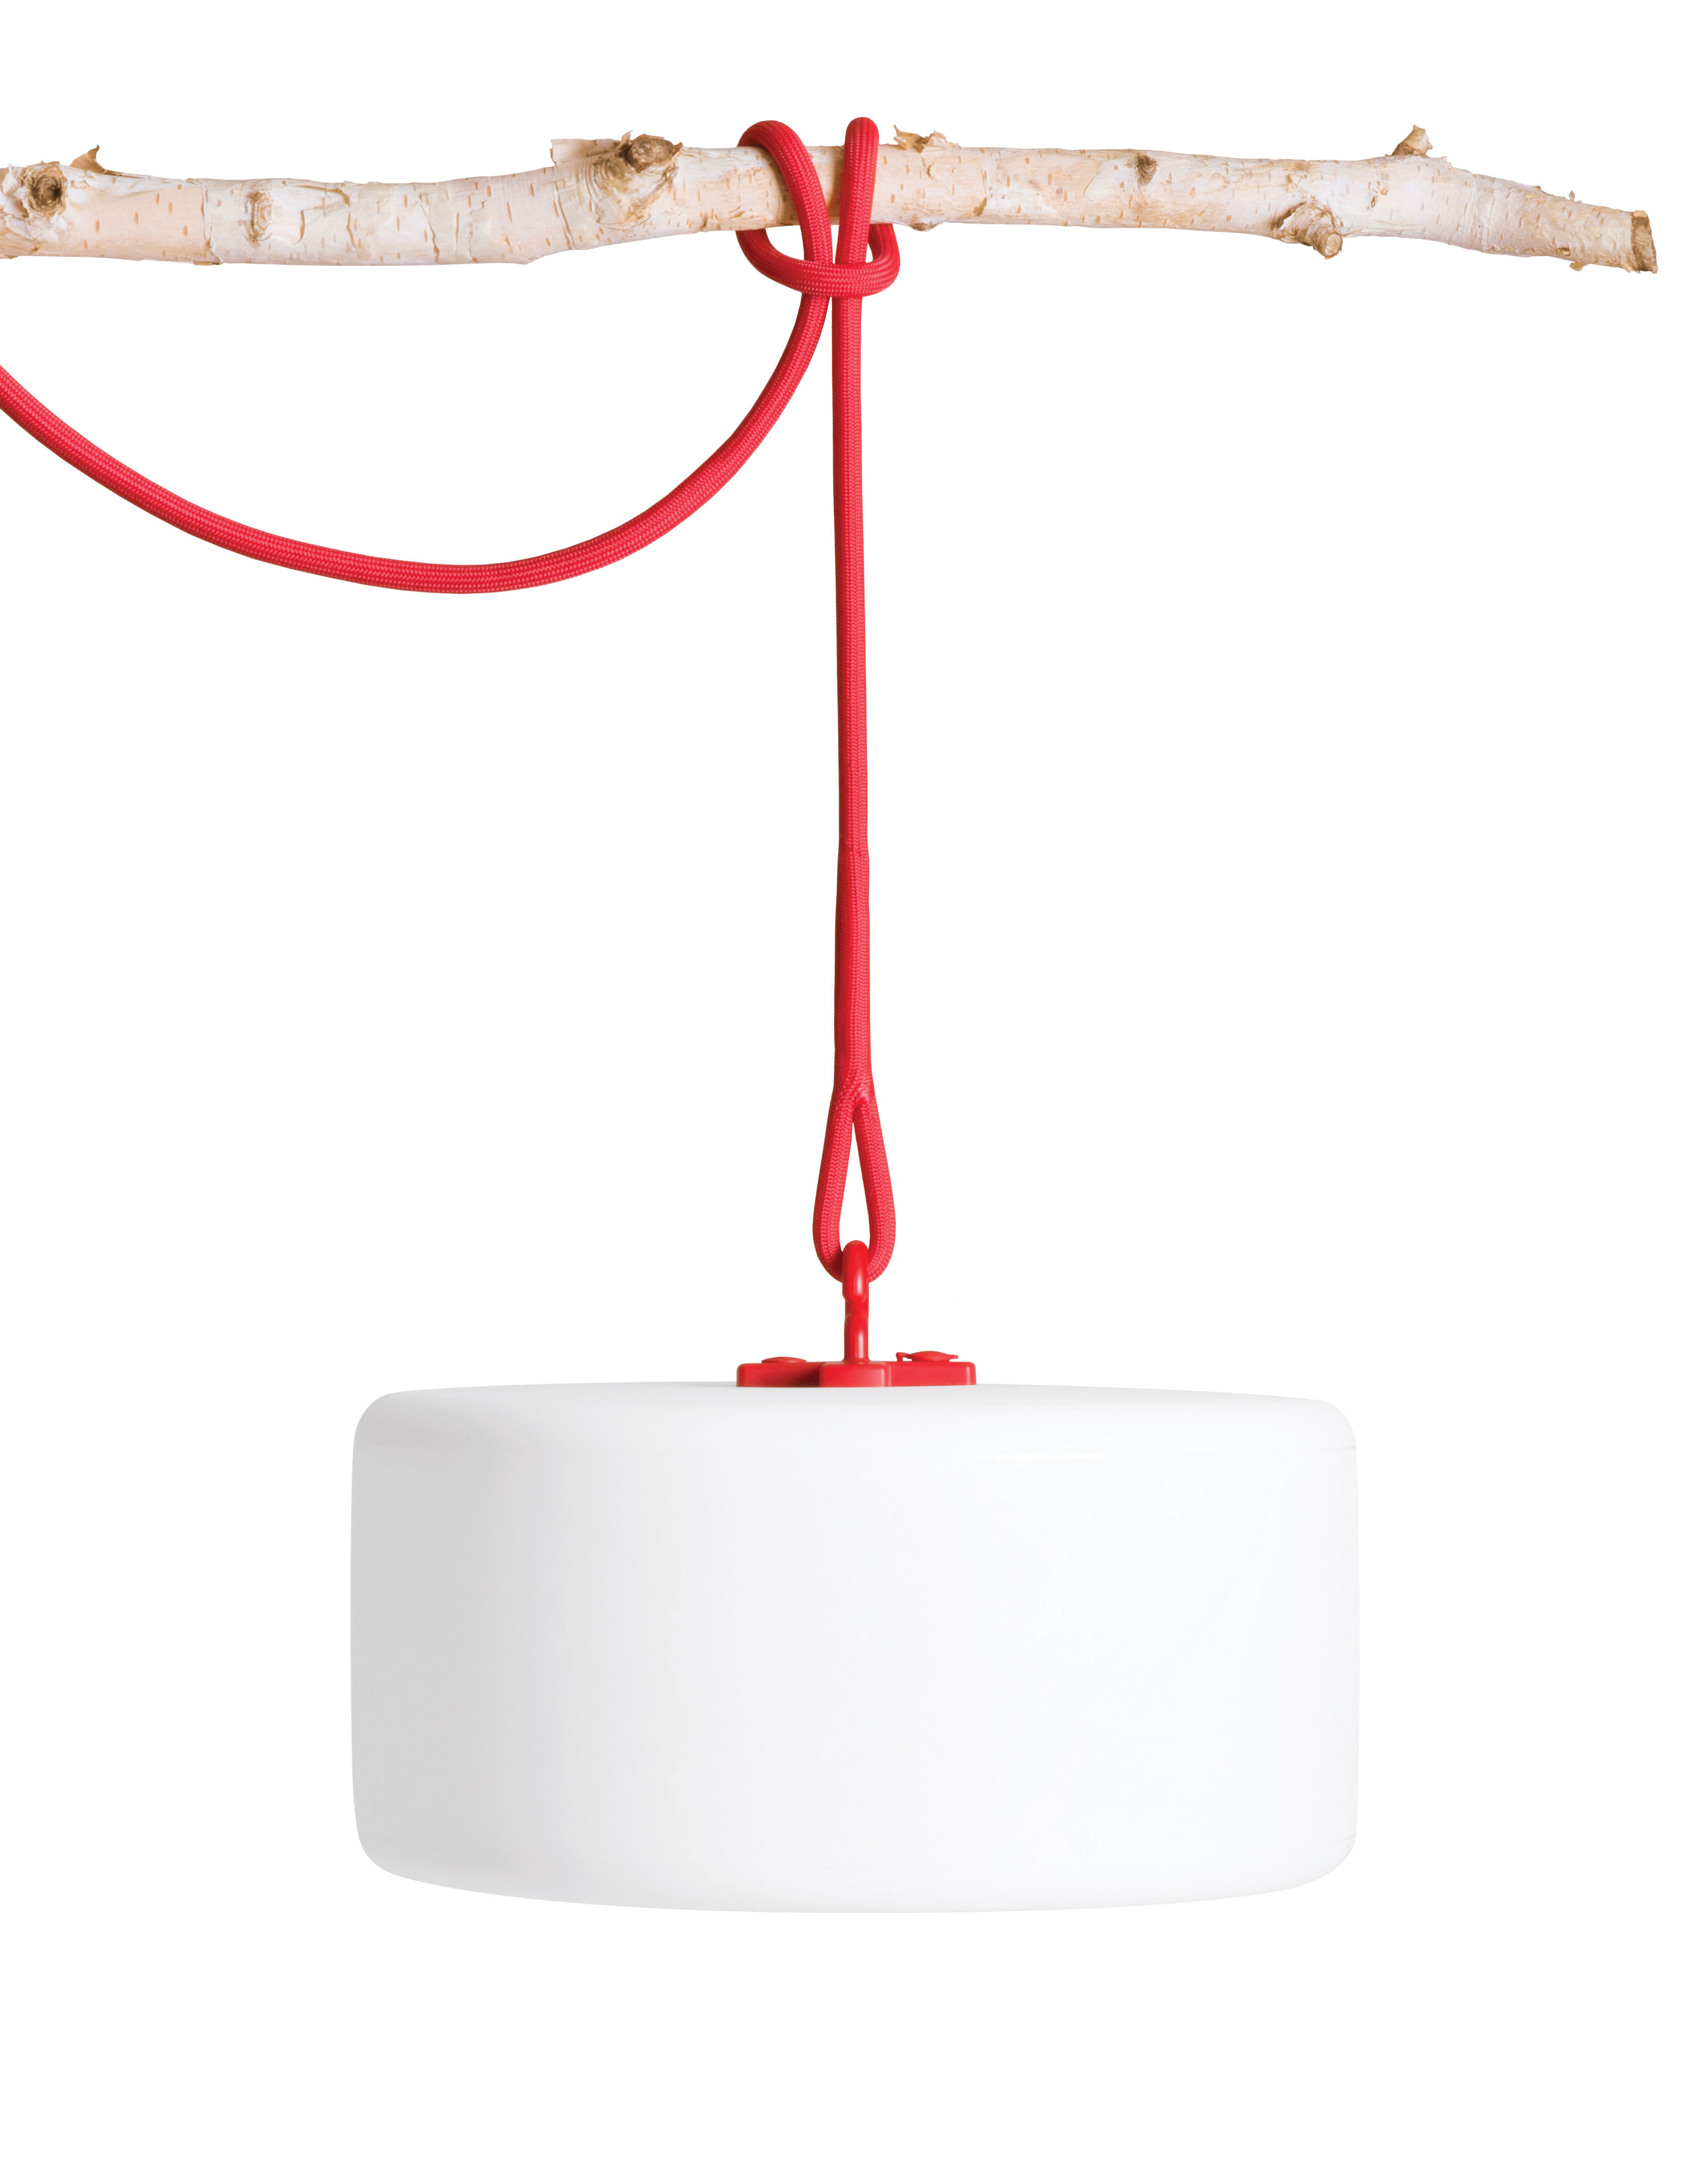 Lighting - Table Lamps - Thierry Le swinger LED Wireless lamp - Floor lamp - USB charging by Fatboy - Red - Polythene, Silicone